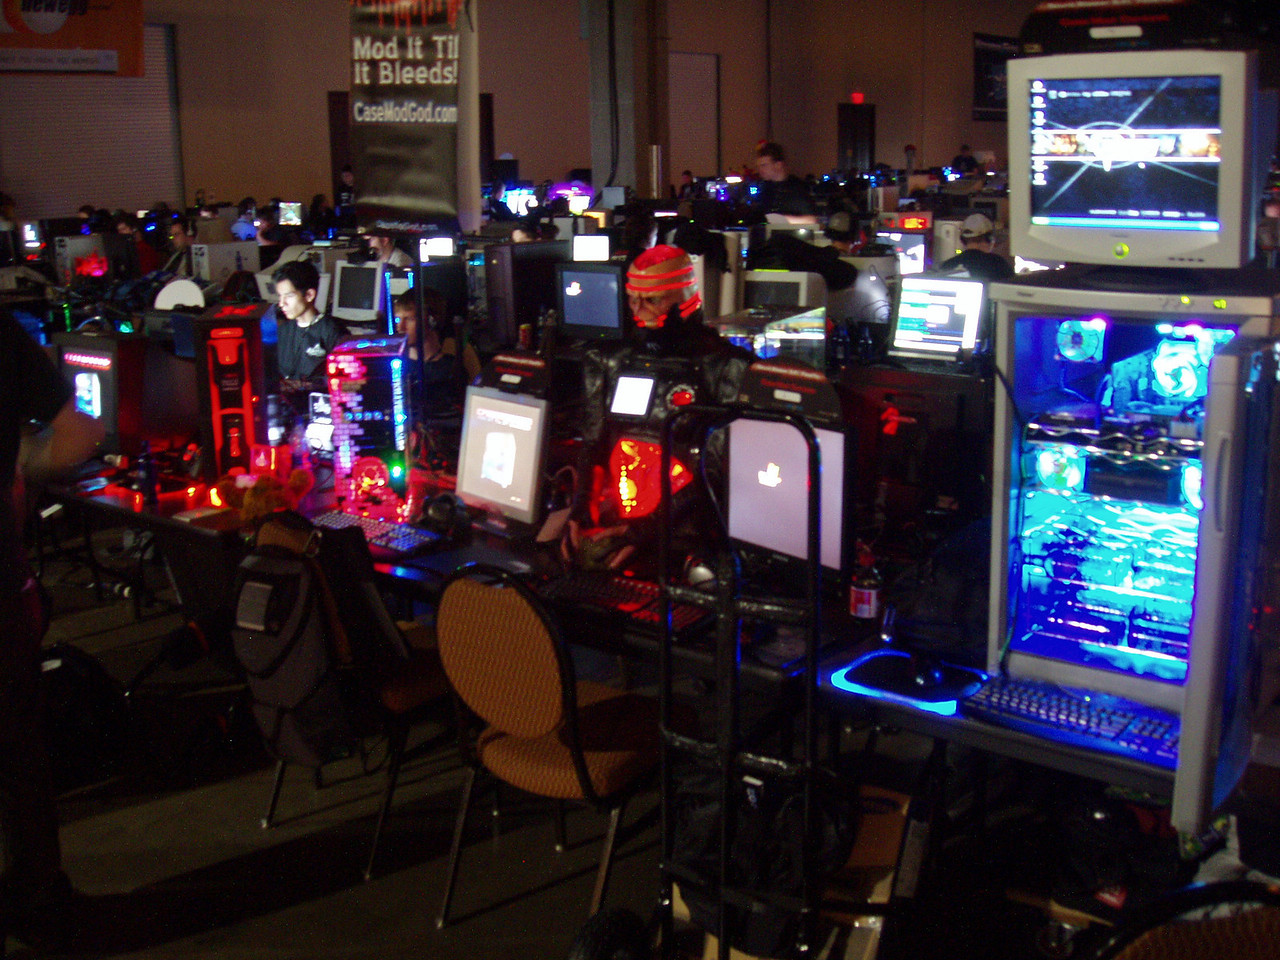 Qcon Day 1 BYOC modded cases